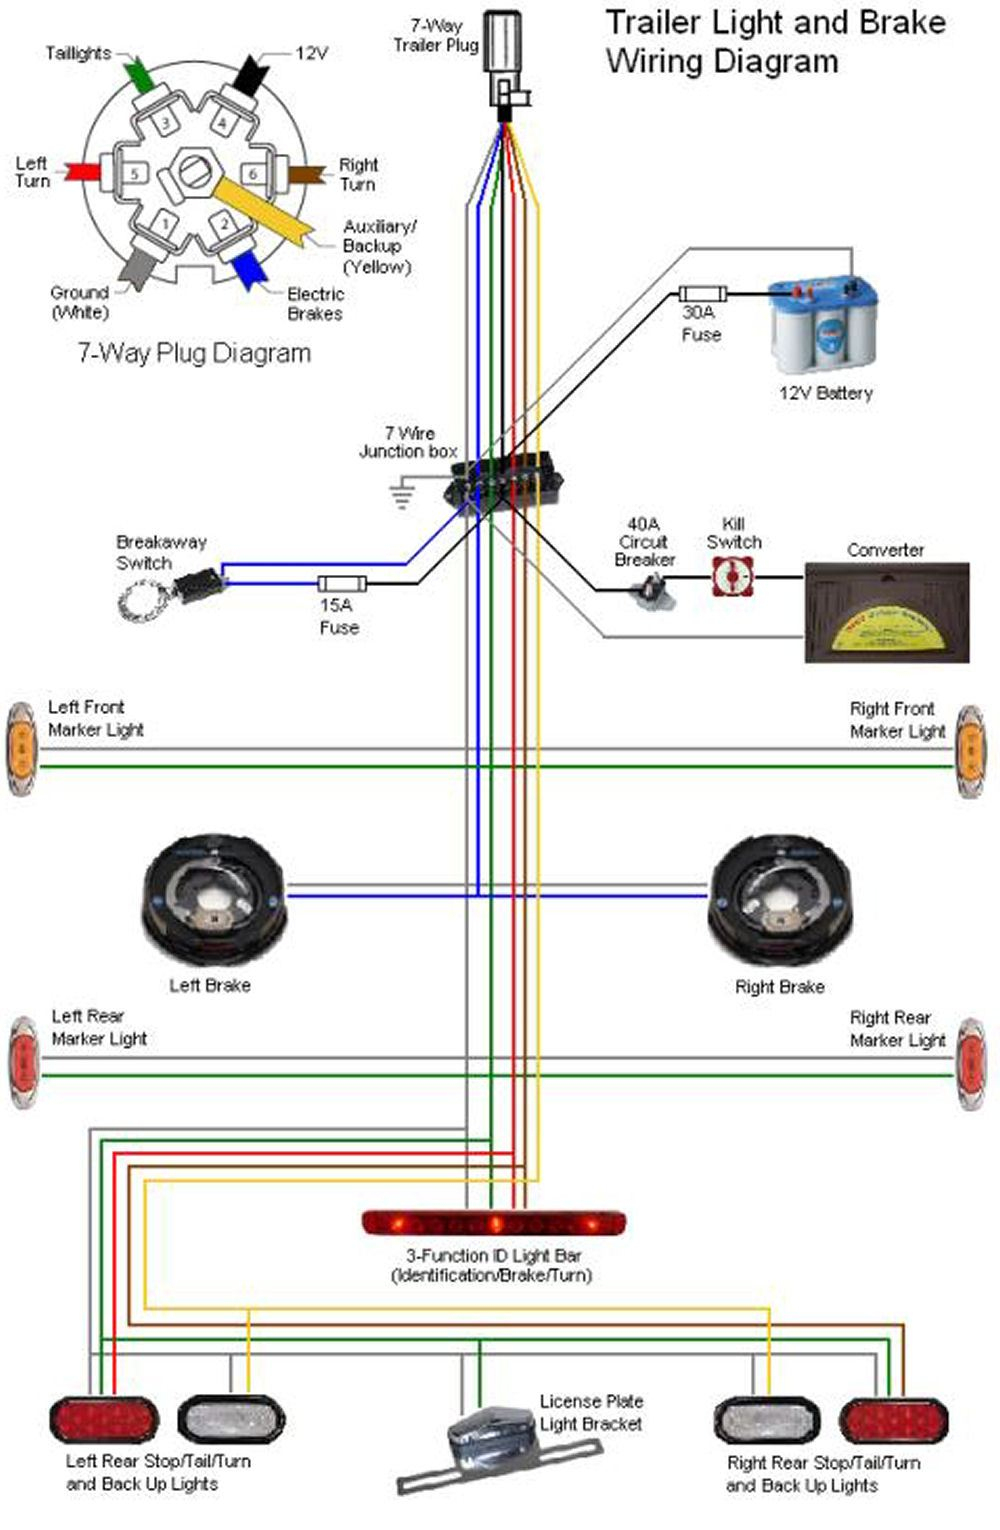 Auxiliary With Tail Lights And Electric Brakes 7 Pin Trailer Wiring - Trailer Wiring Diagram Electric Brakes